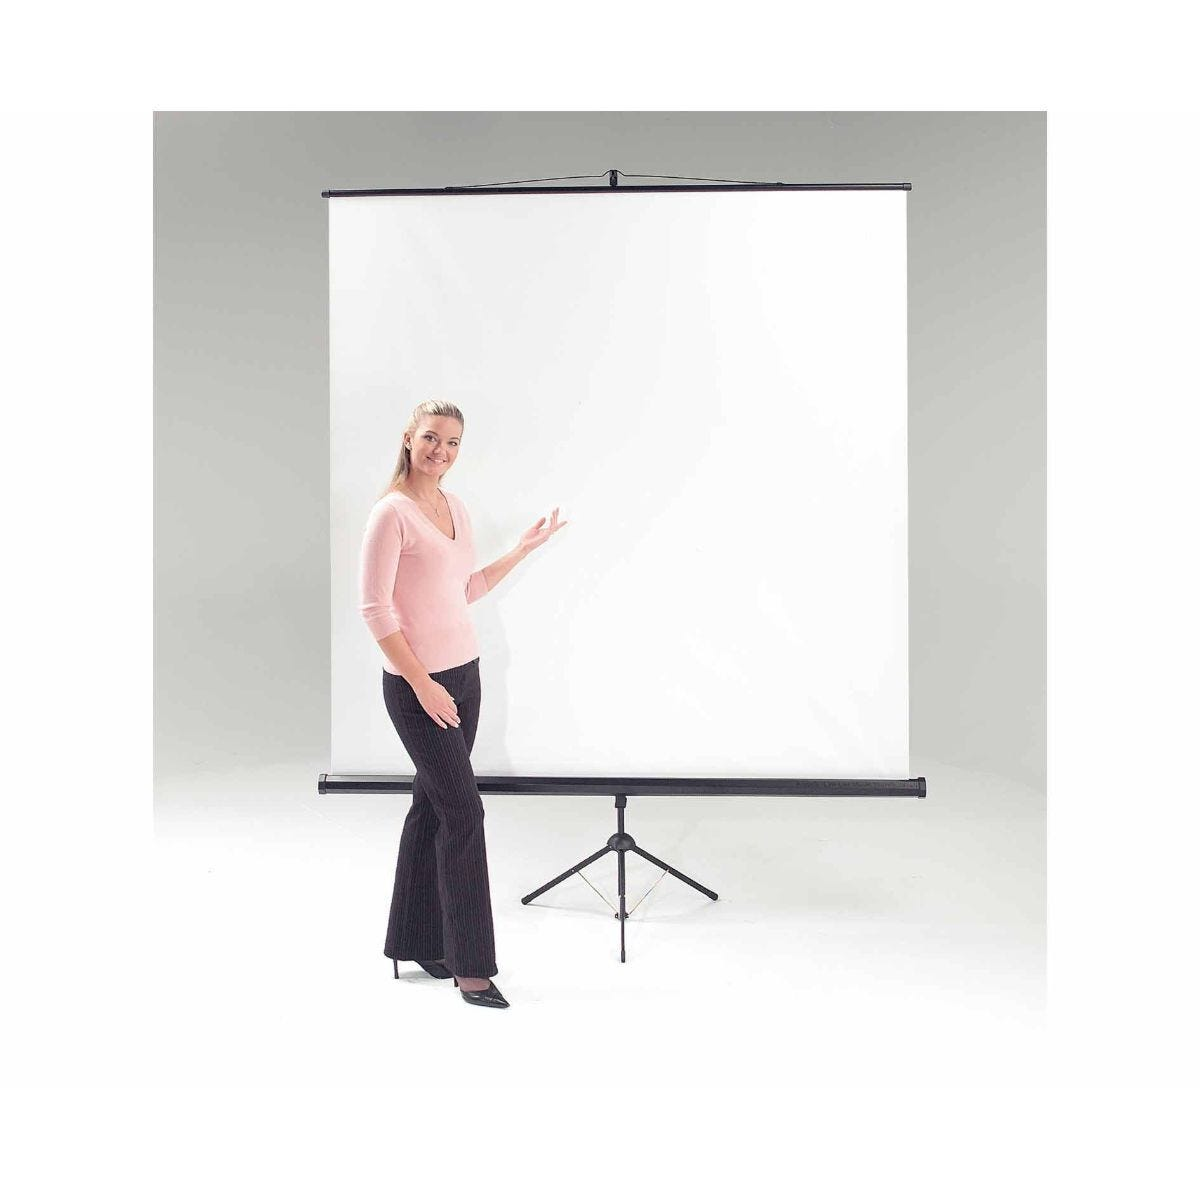 Metroplan Eyeline Tripod Projection Screen 1800 x 1800mm